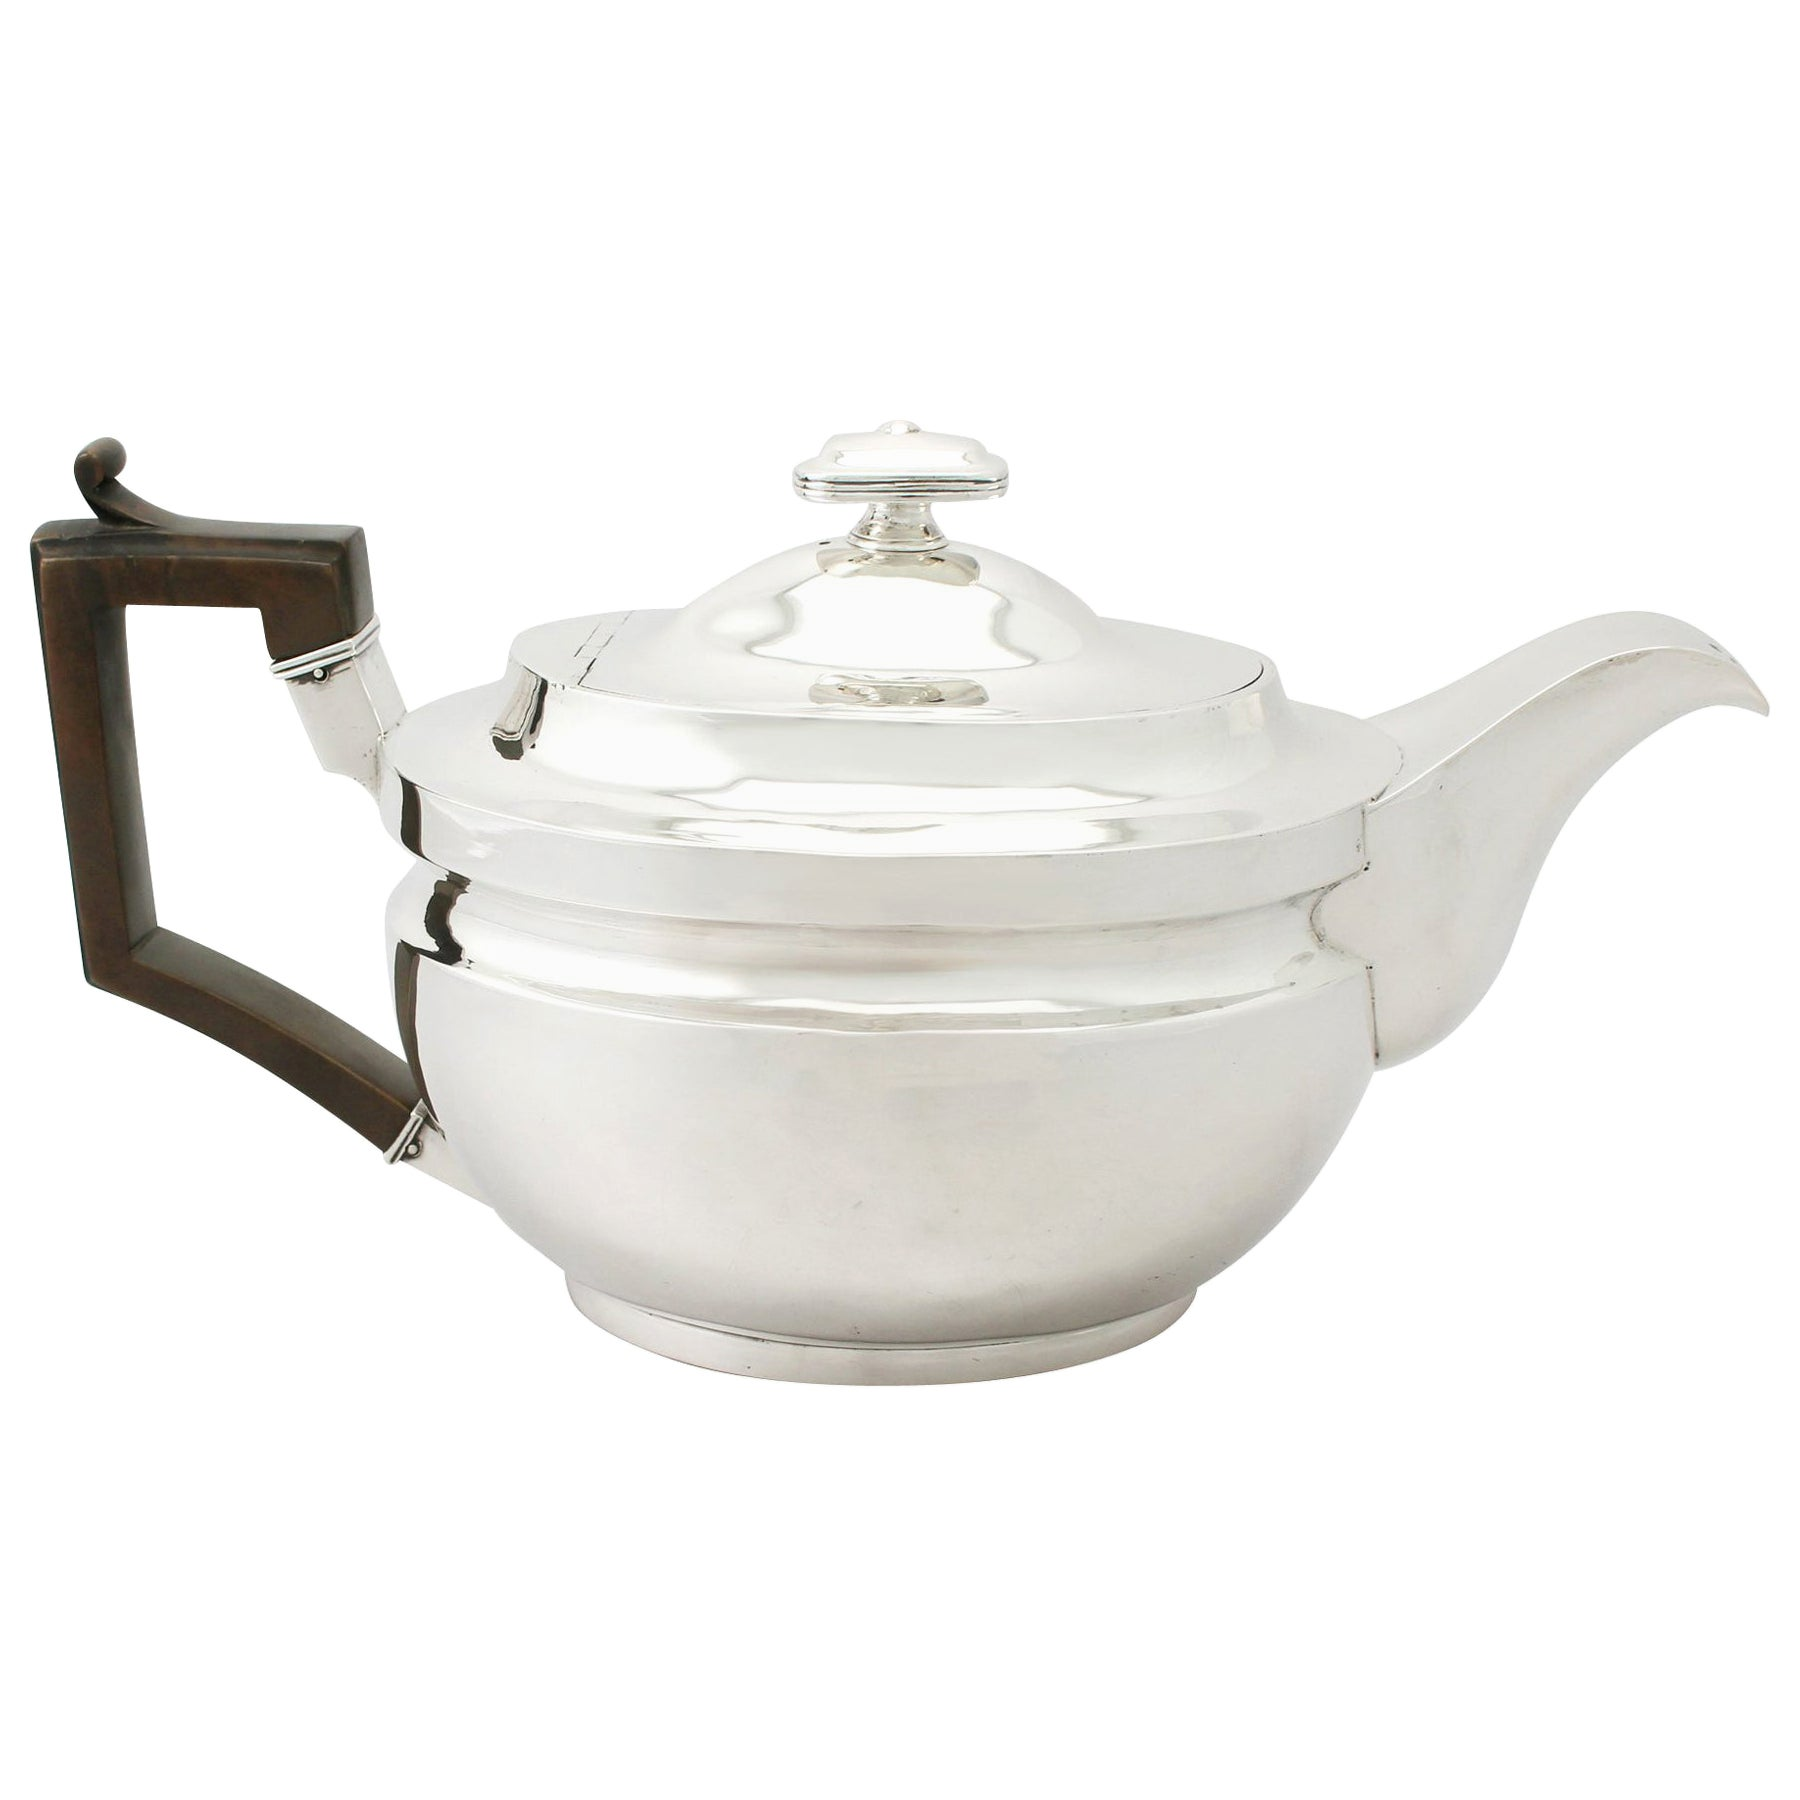 Antique George III 1807 English Sterling Silver Teapot by Stephen Adams II